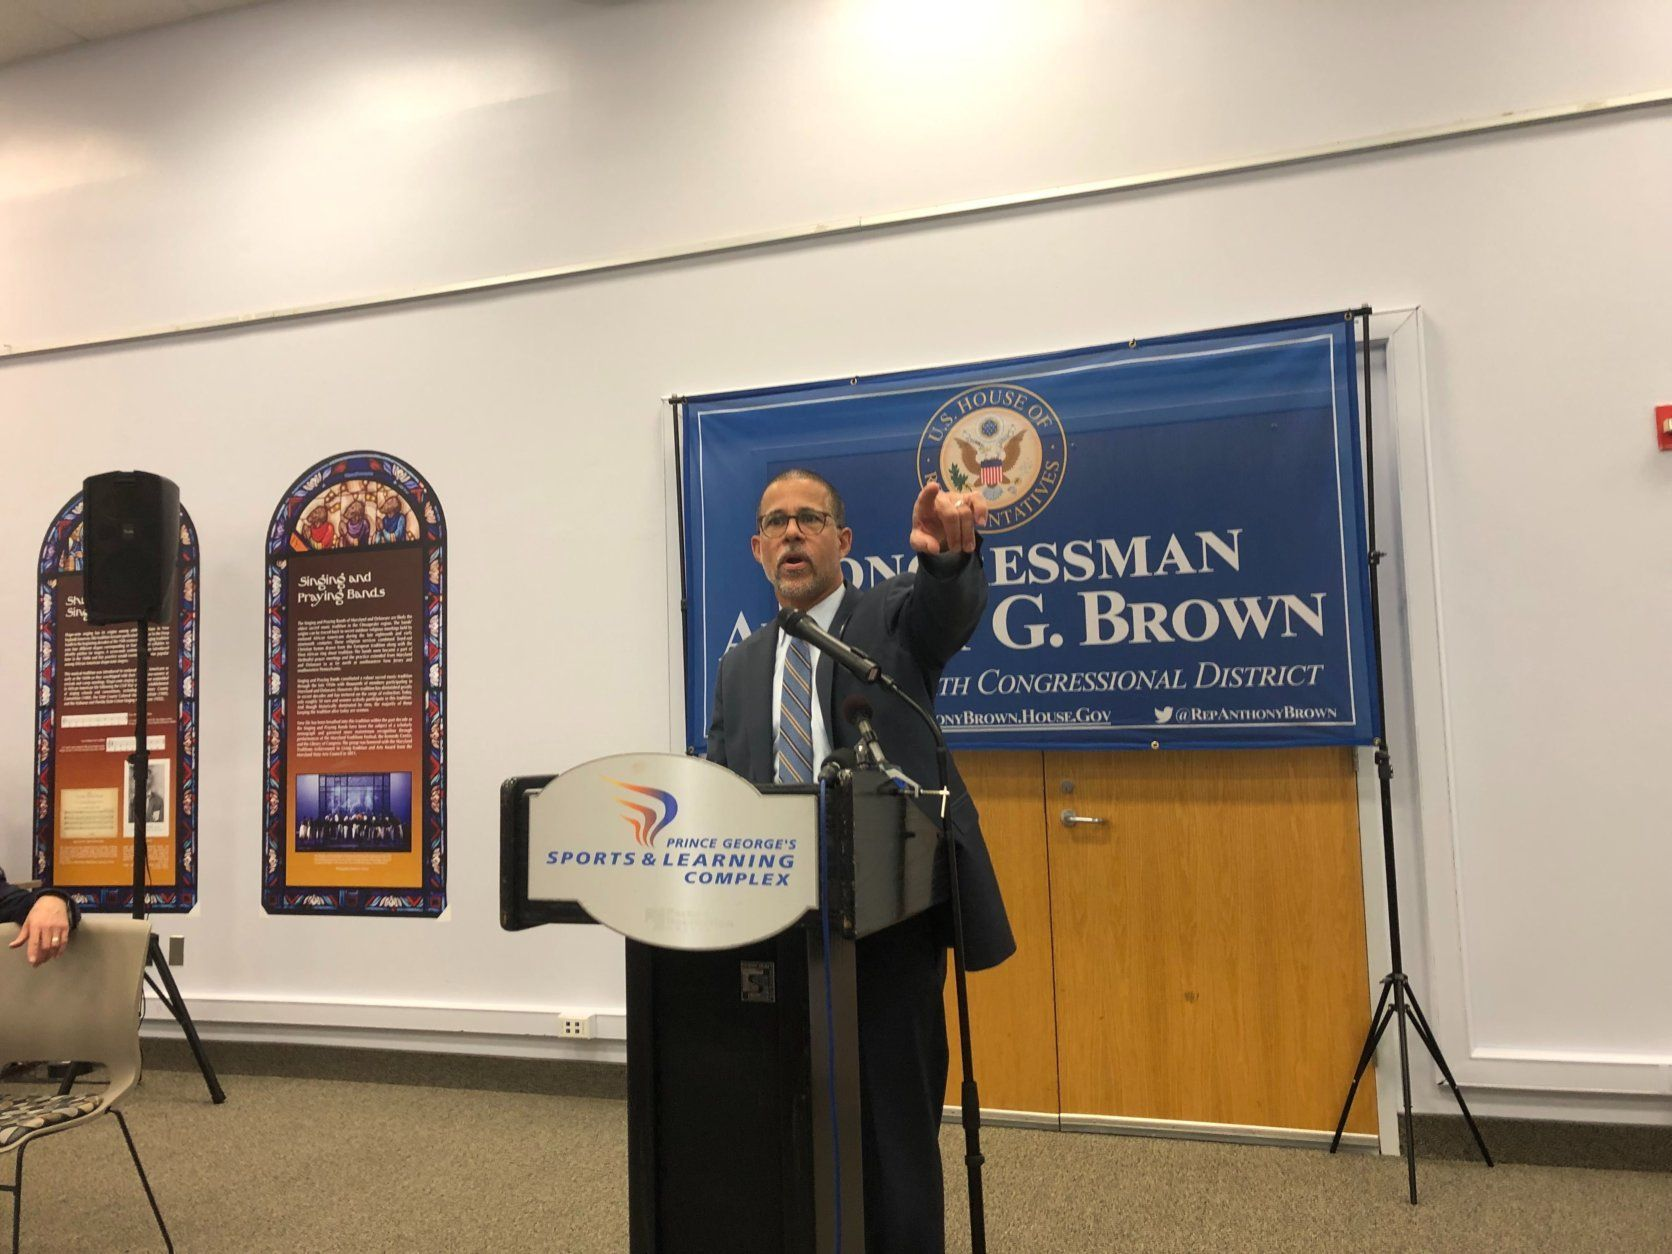 The meeting, held atWayne K. Curry Sports and Learning Center in Landover, was hosted by Congressman Anthony Brown a Democrat from Prince George's County. (WTOP/Mike Murillo)